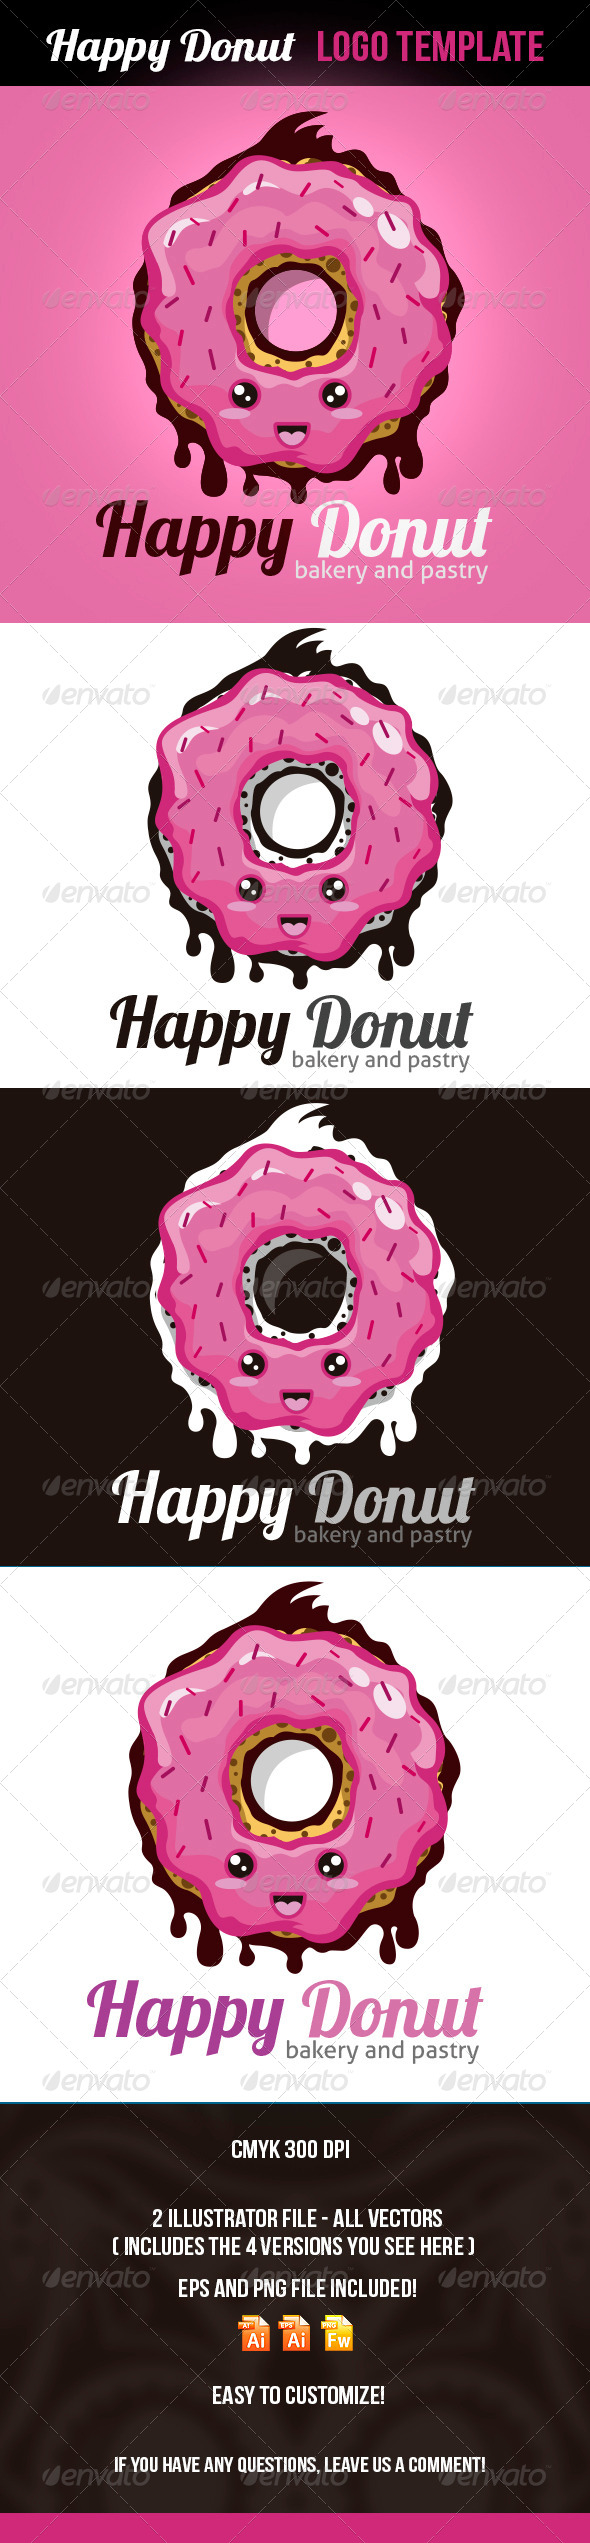 GraphicRiver Happy Donut Logo Template 4706881